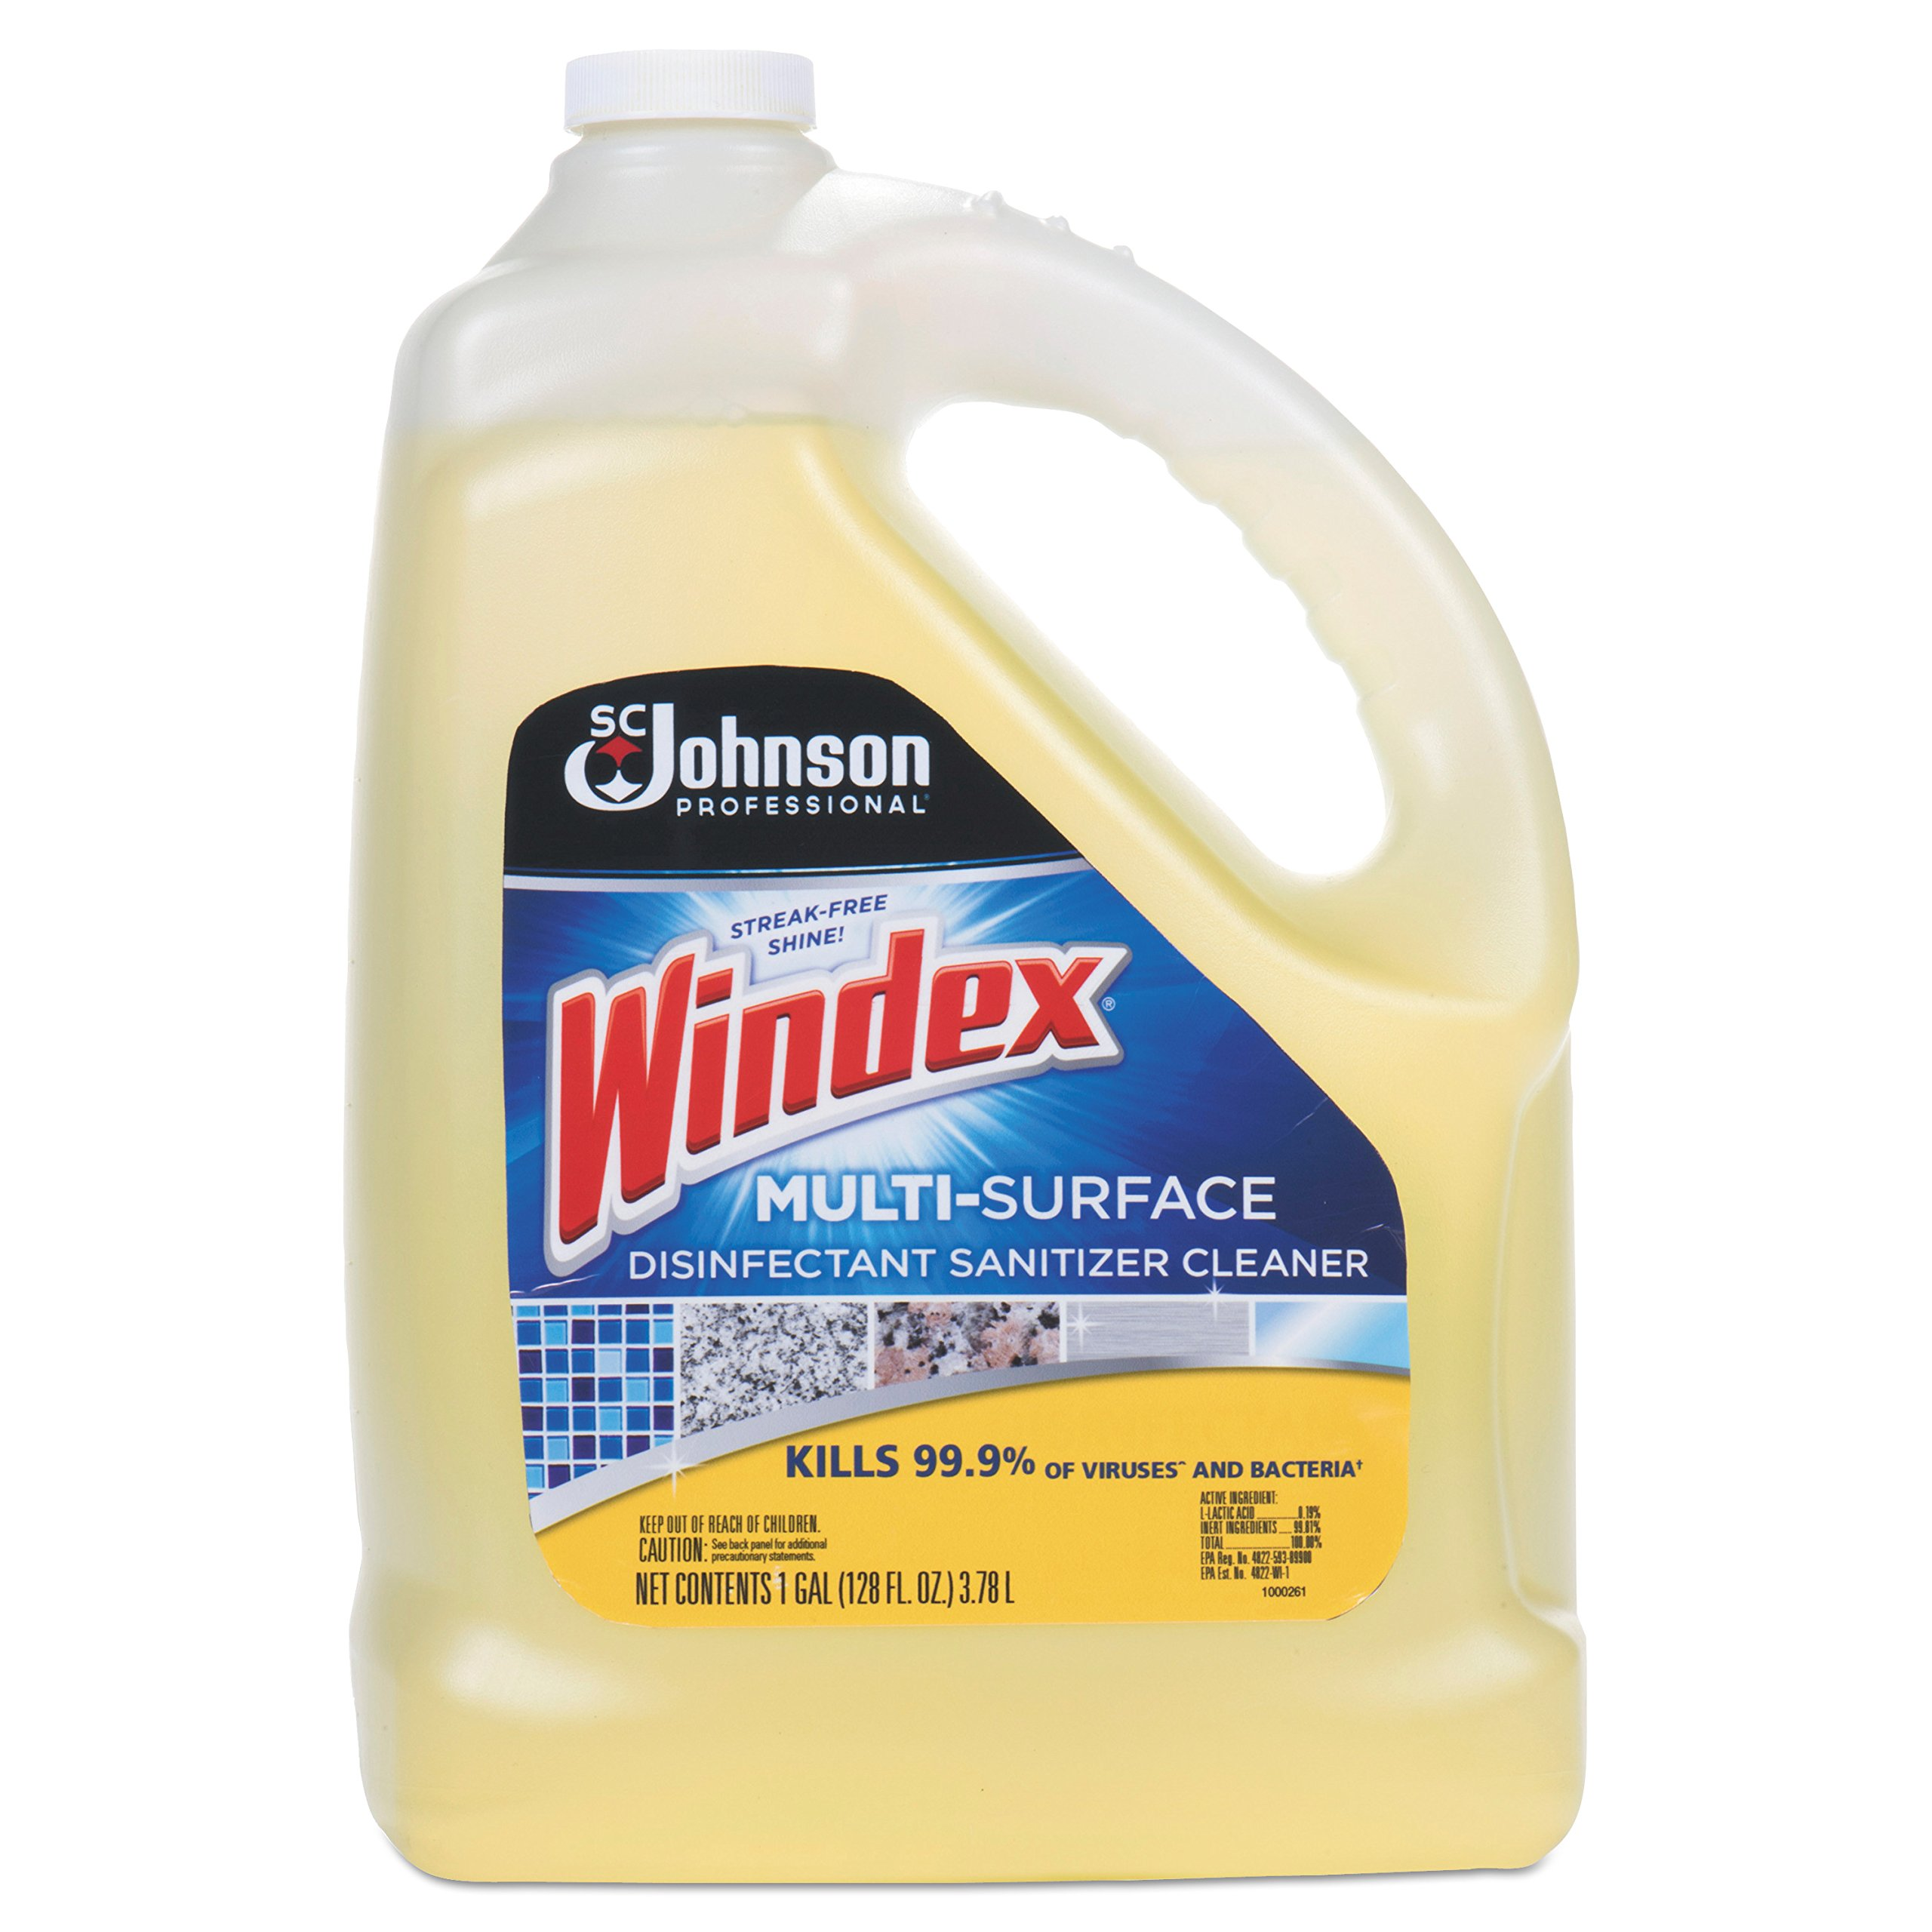 Windex 657067 T Multi-Surface Disinfectant Cleaner, Citrus, 1 gal Bottle (Case of 4) by Windex